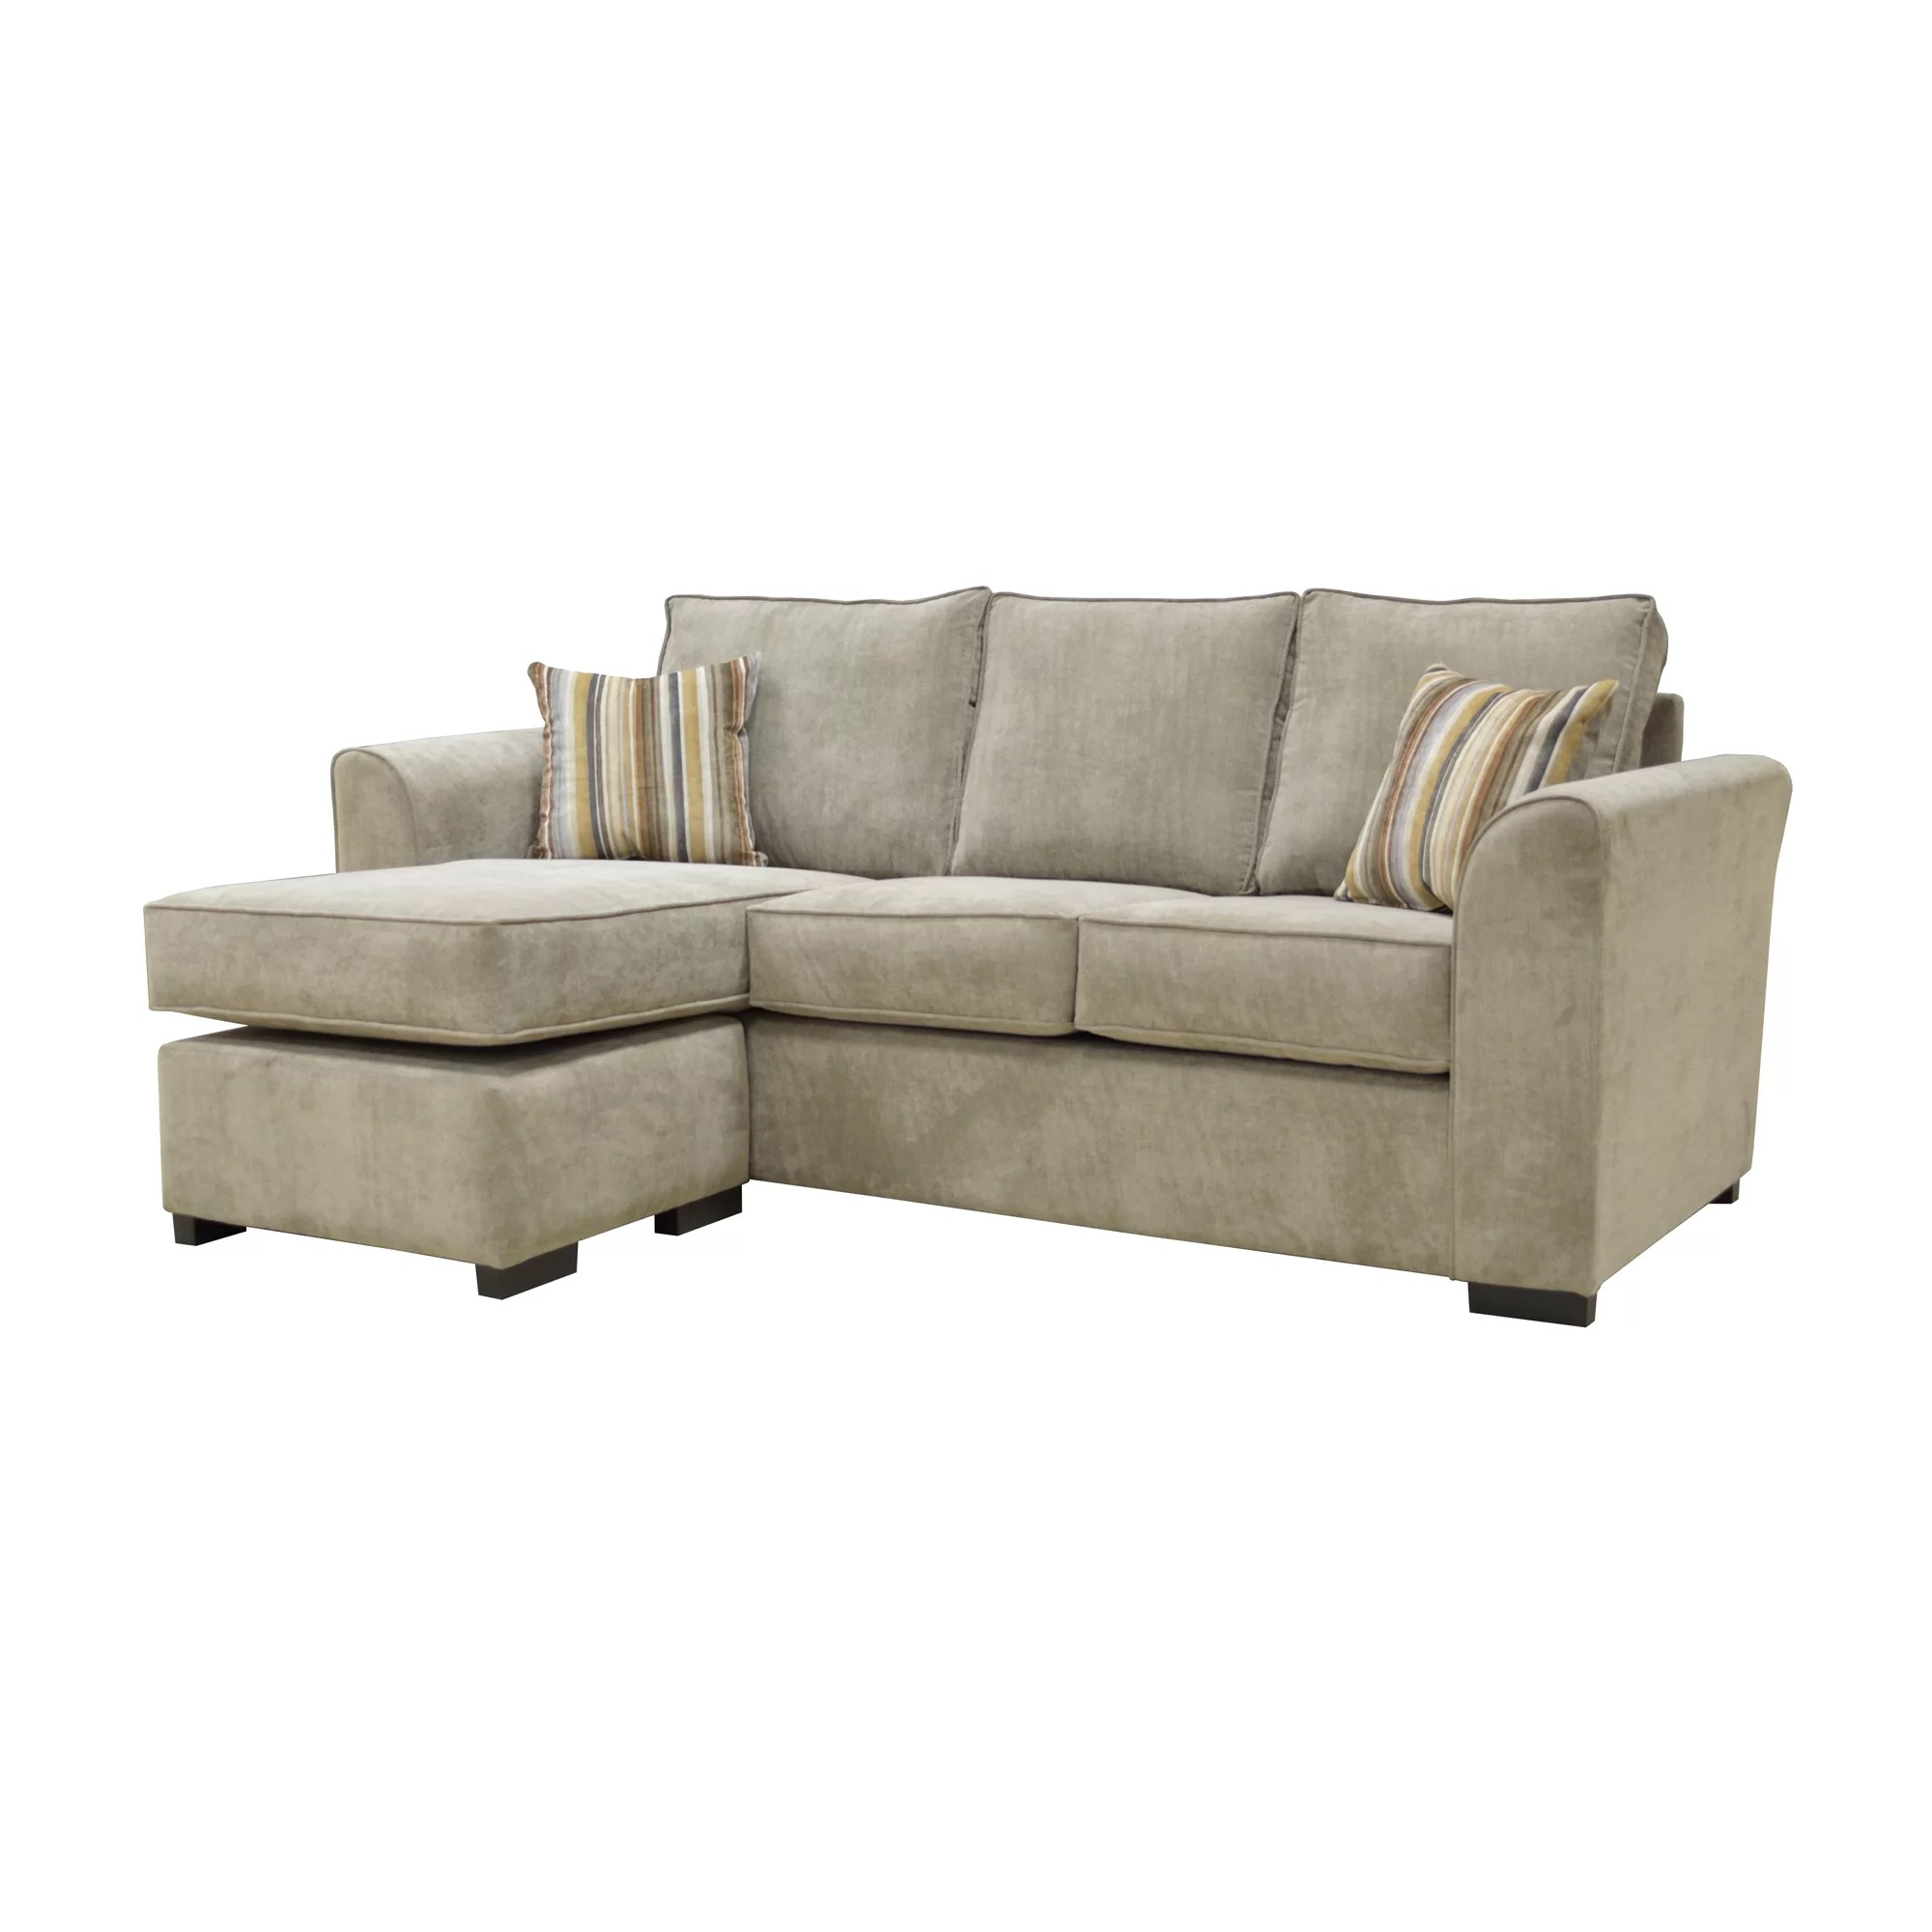 corner sectional sofa reviews lexington brown faux leather chaise factory lara and wayfair uk